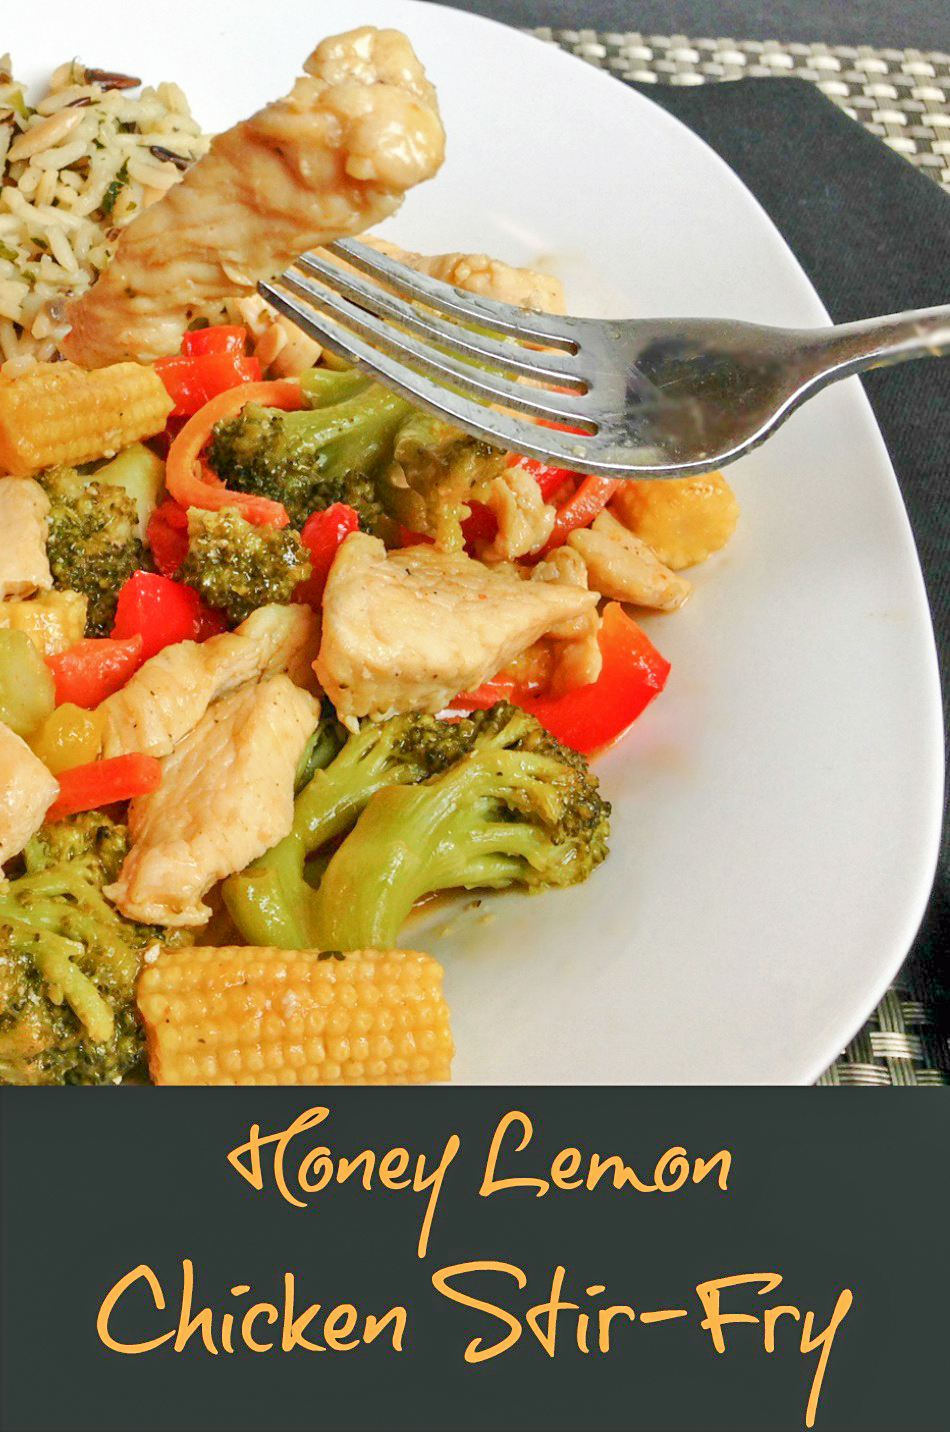 Honey Lemon Chicken Stir Fry Recipe - Powered By Mom